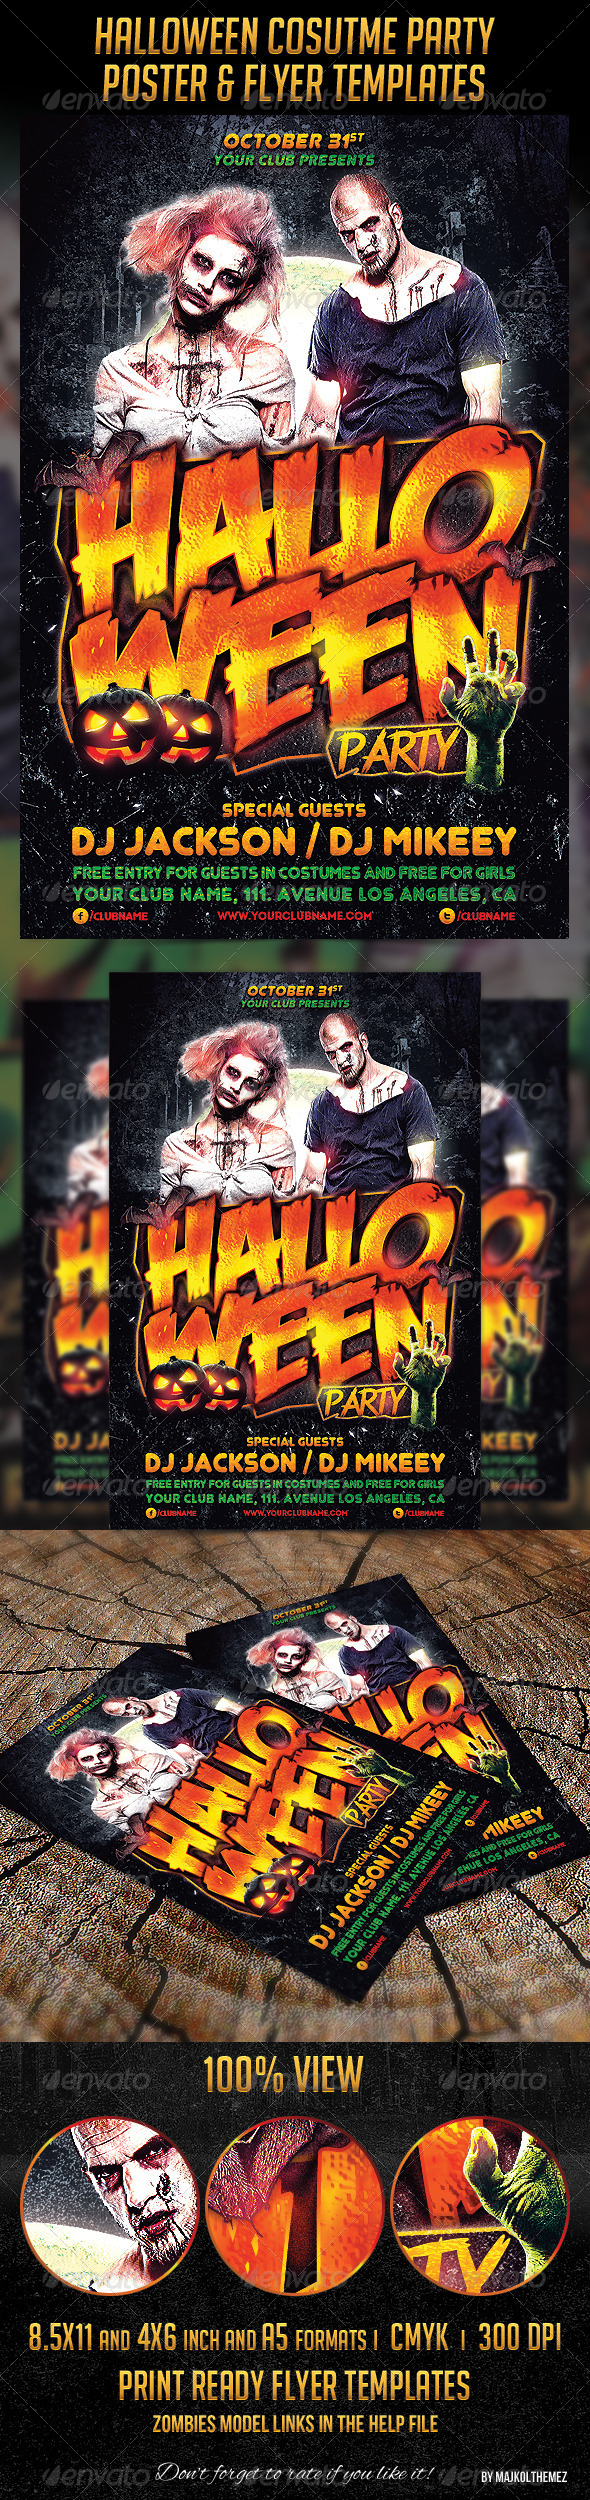 Halloween Costume Party Flyers and Poster